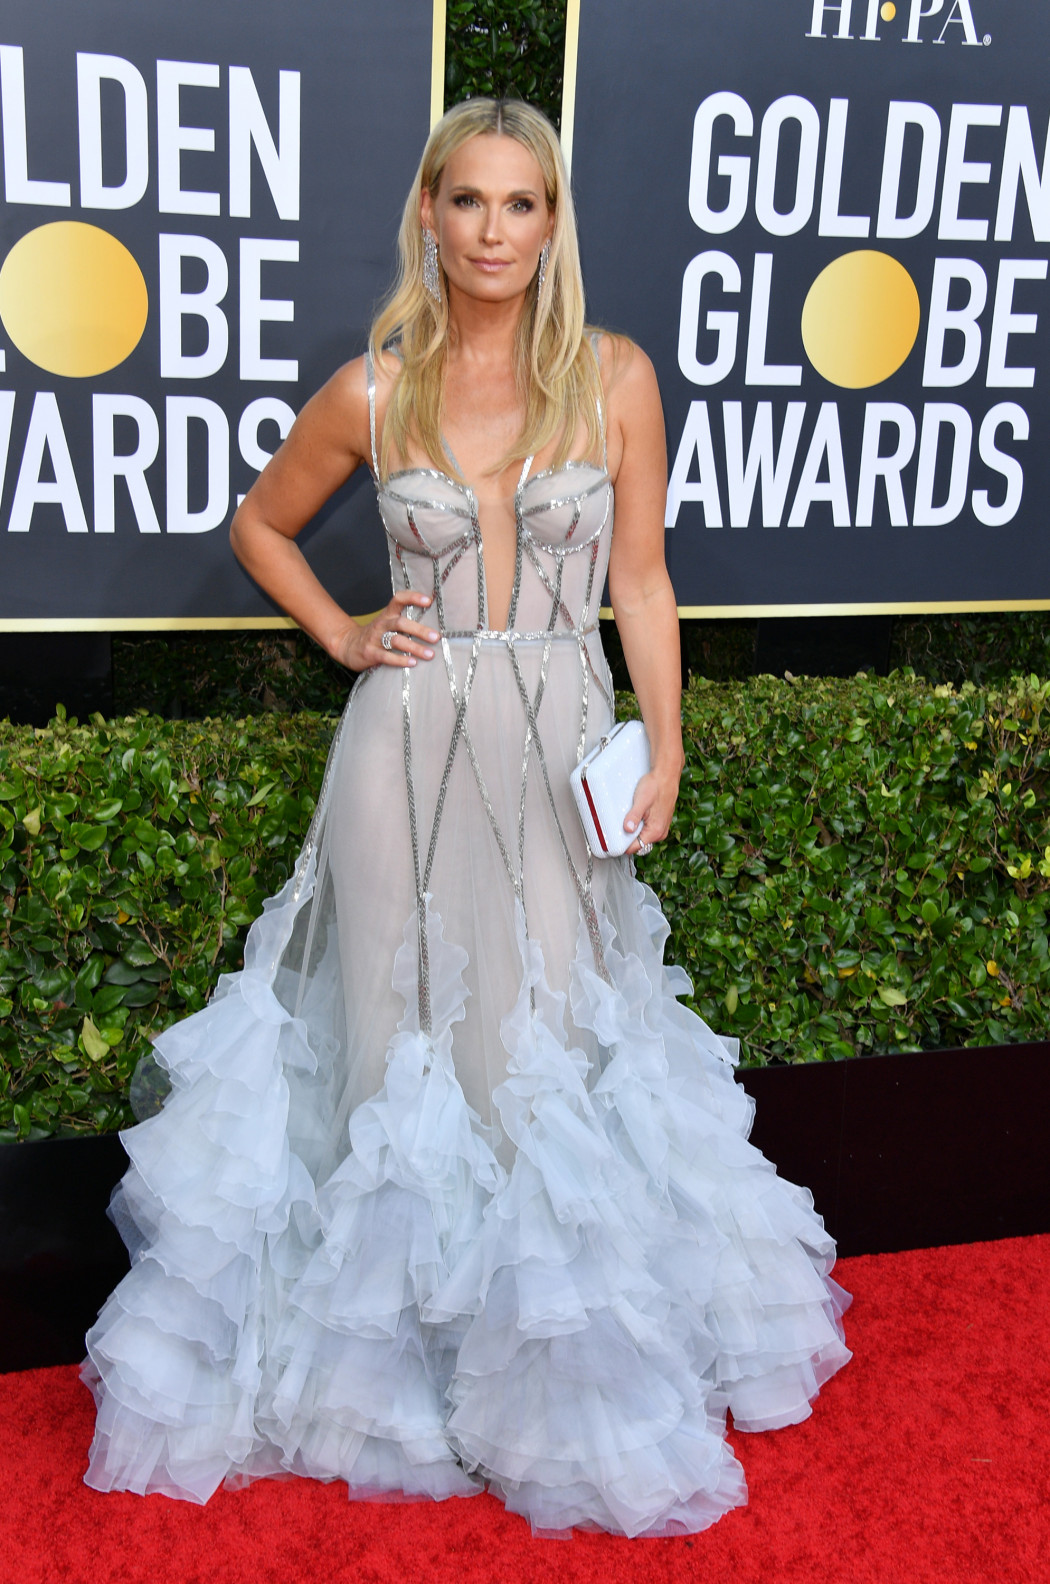 Golden Globes 2020 : les plus beaux looks du tapis rouge - 11